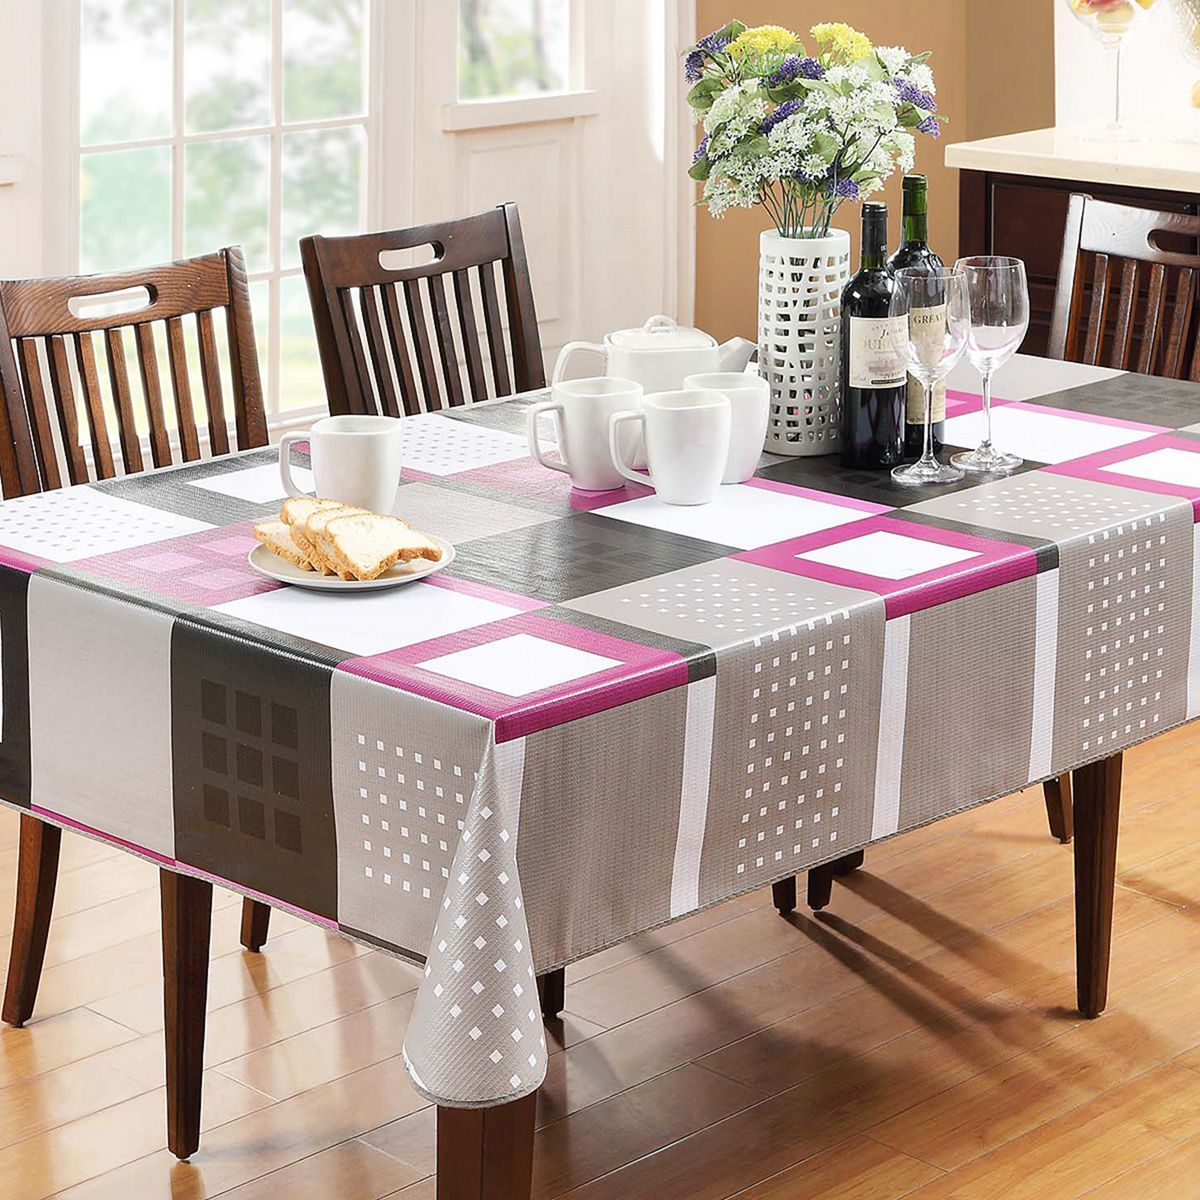 Epic 5 Awesome Dining Room Design With Bright Color Dining Table Ideas Https Freshouz Com 5 Awesome Din Table Cloth Cloth Table Covers Dining Room Tablecloth